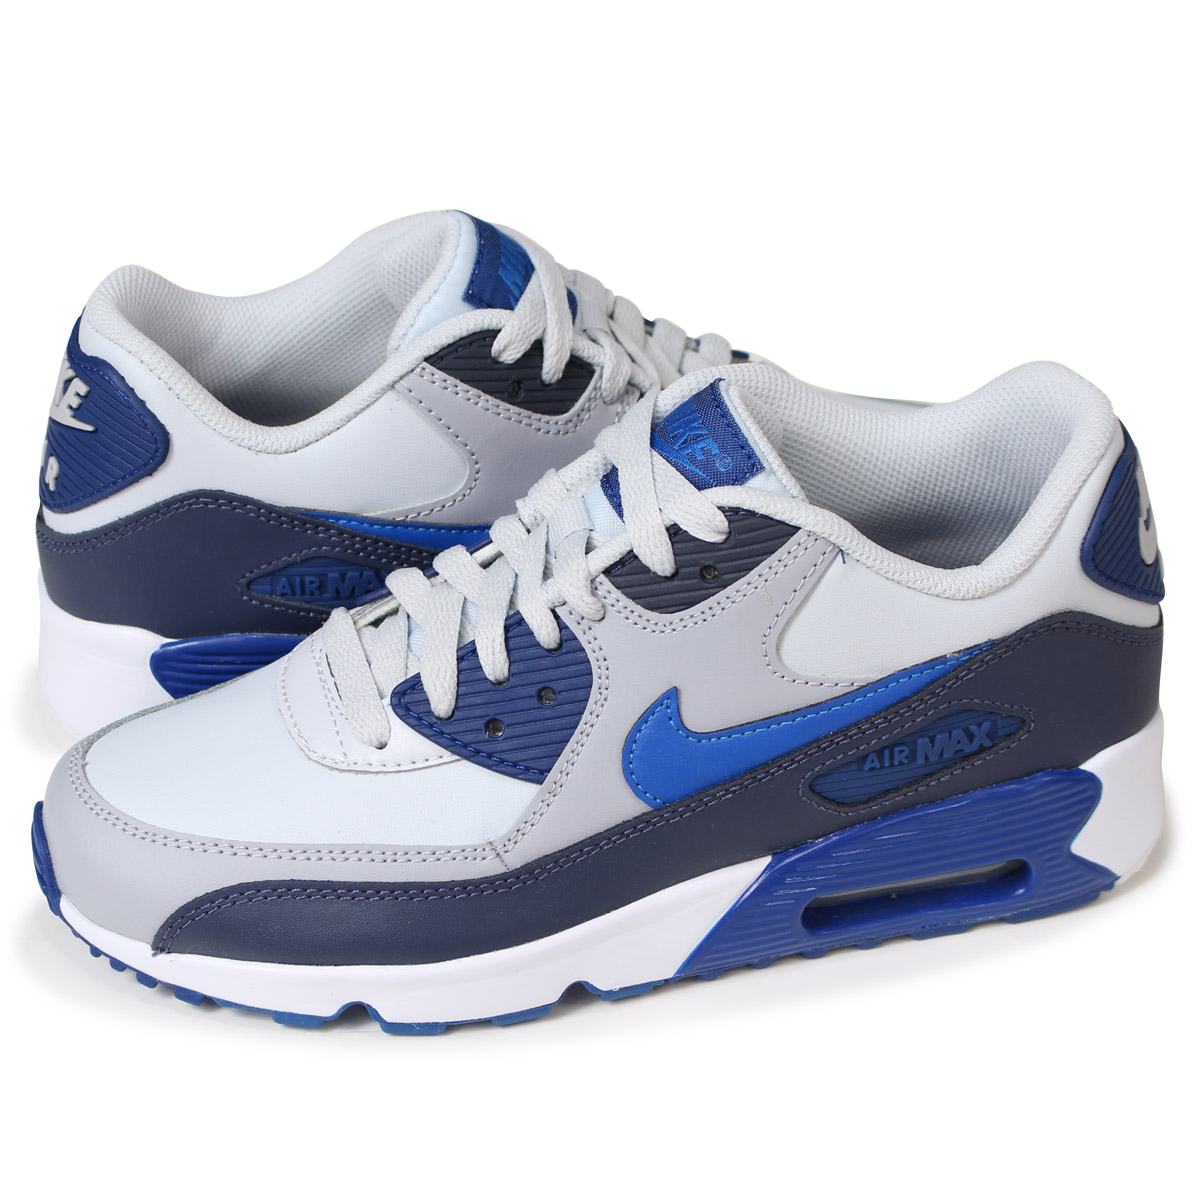 nouveau style c0429 e946d NIKE AIR MAX 90 LEATHER GS Kie Ney AMAX 90 Lady's sneakers 833,412-407 blue  [5/12 Shinnyu load]